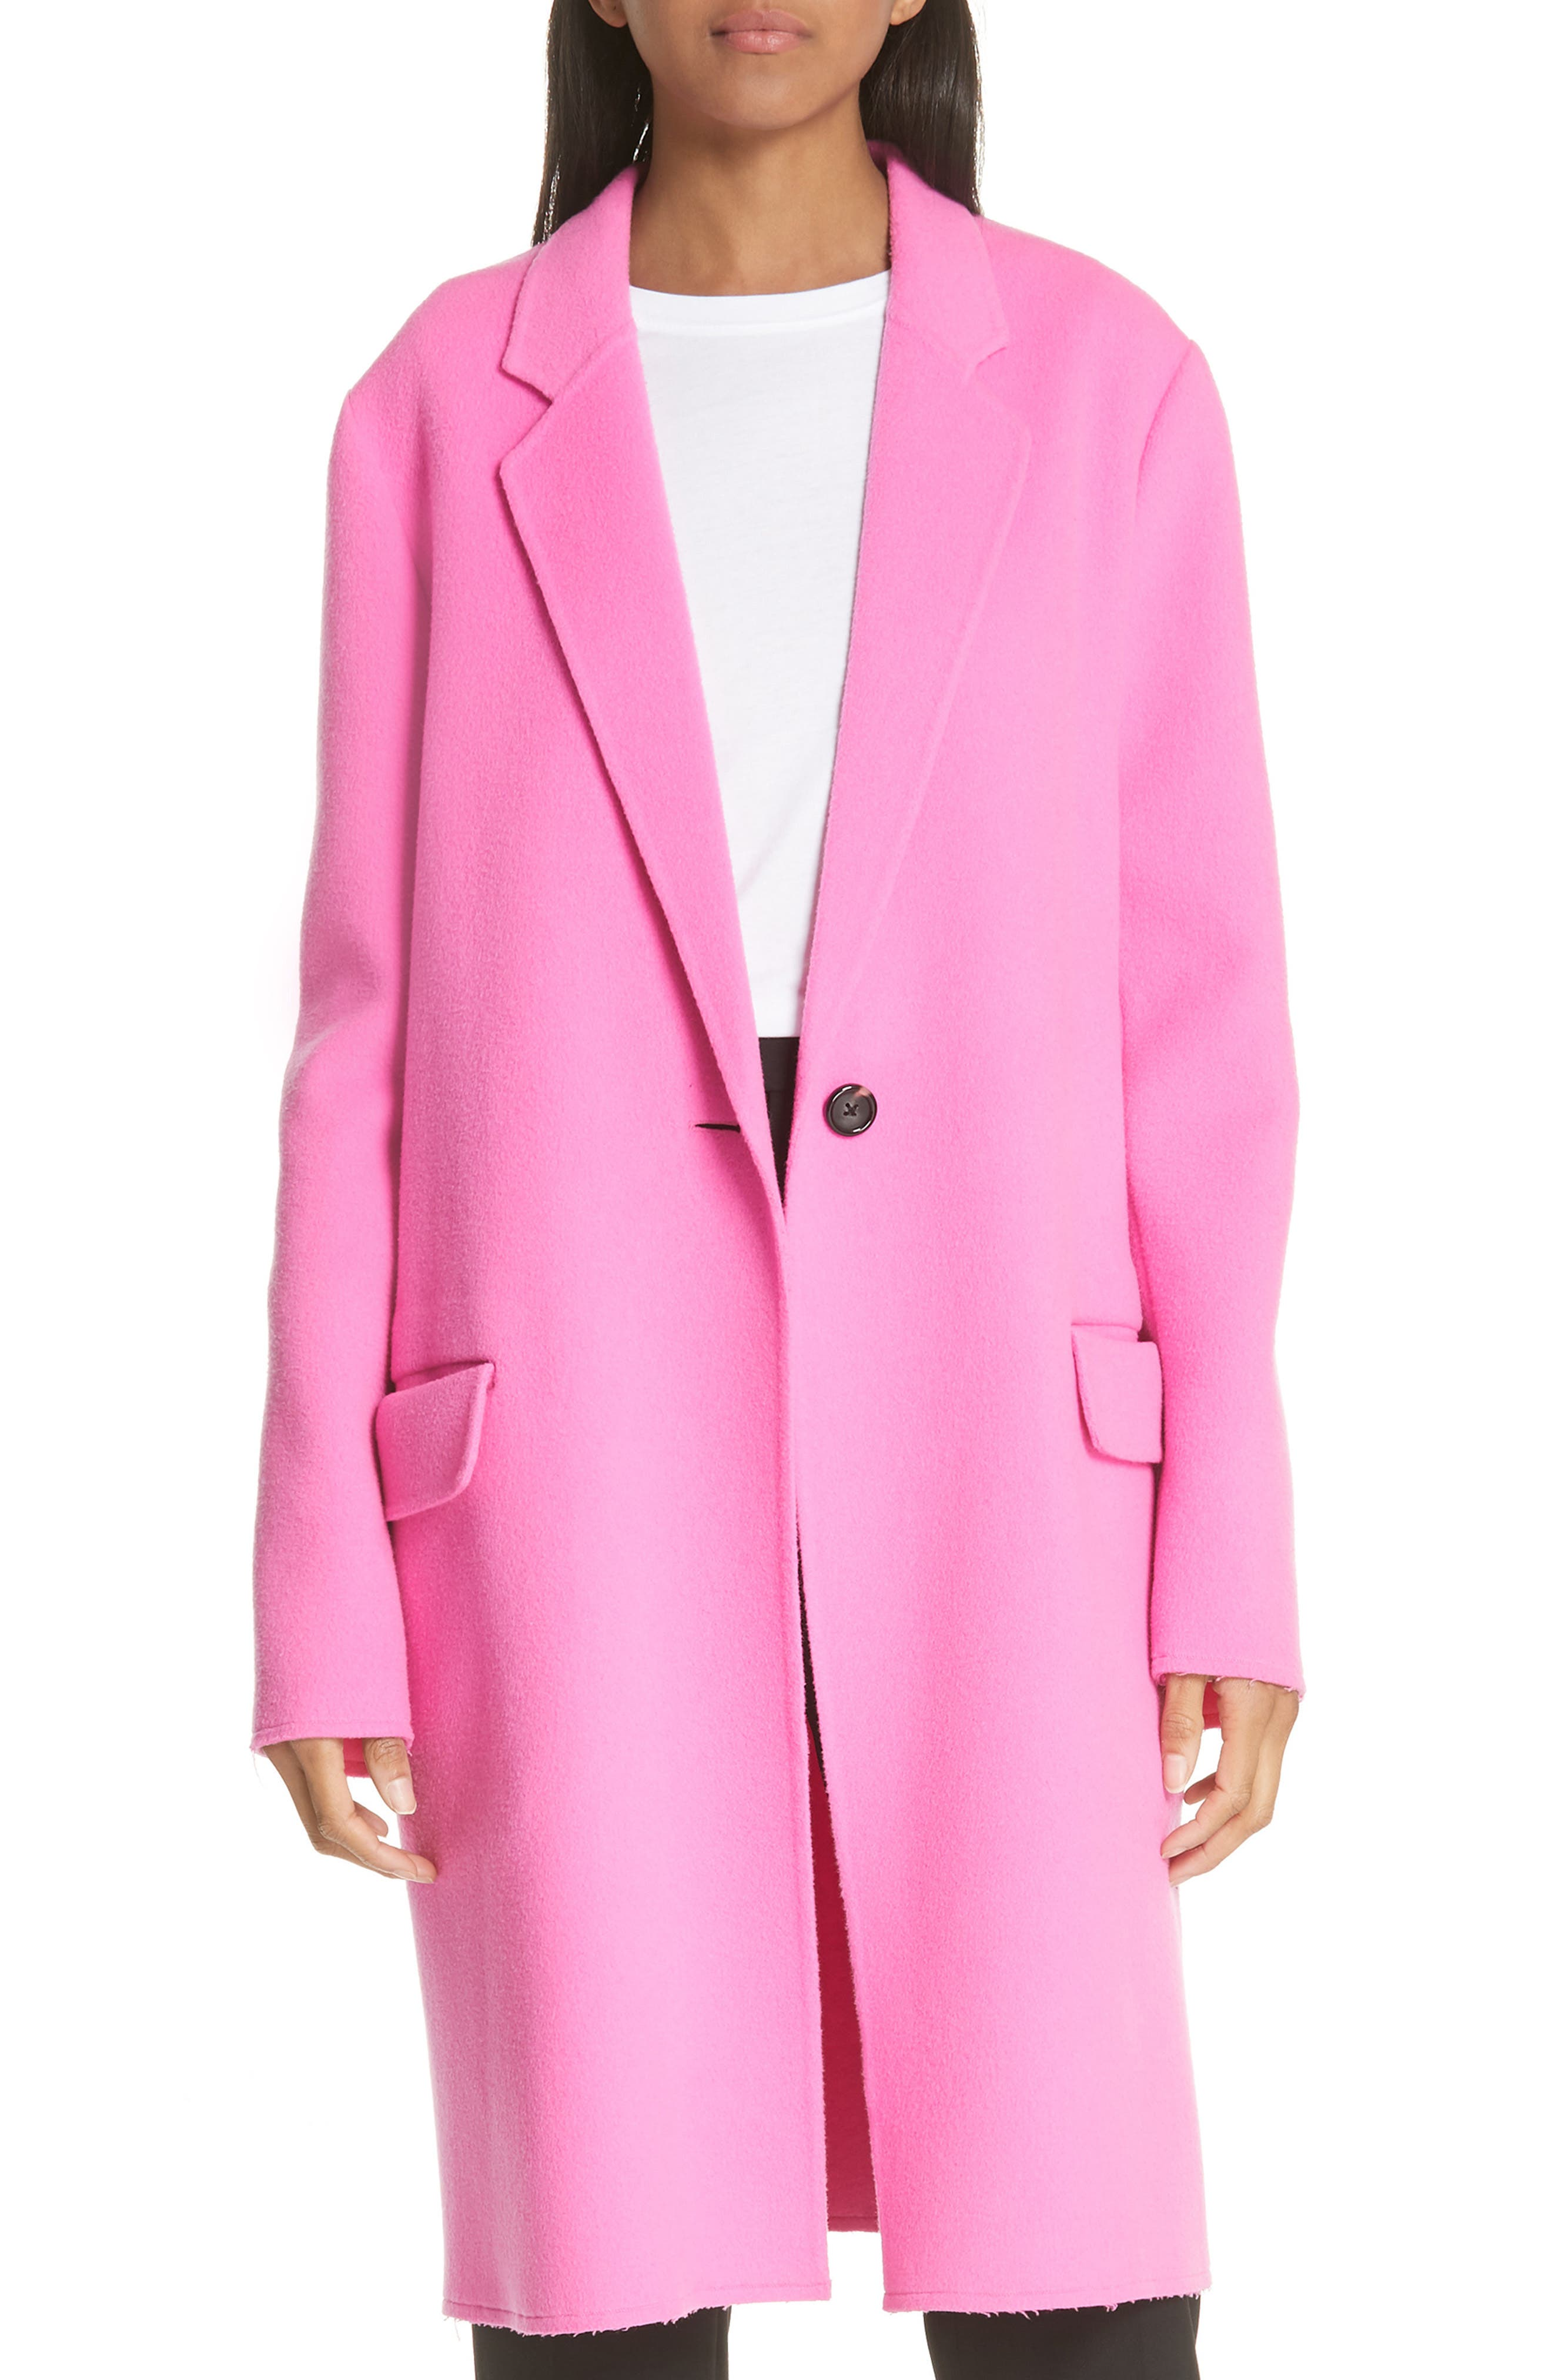 Double Face Wool & Cashmere Coat,                             Main thumbnail 1, color,                             694